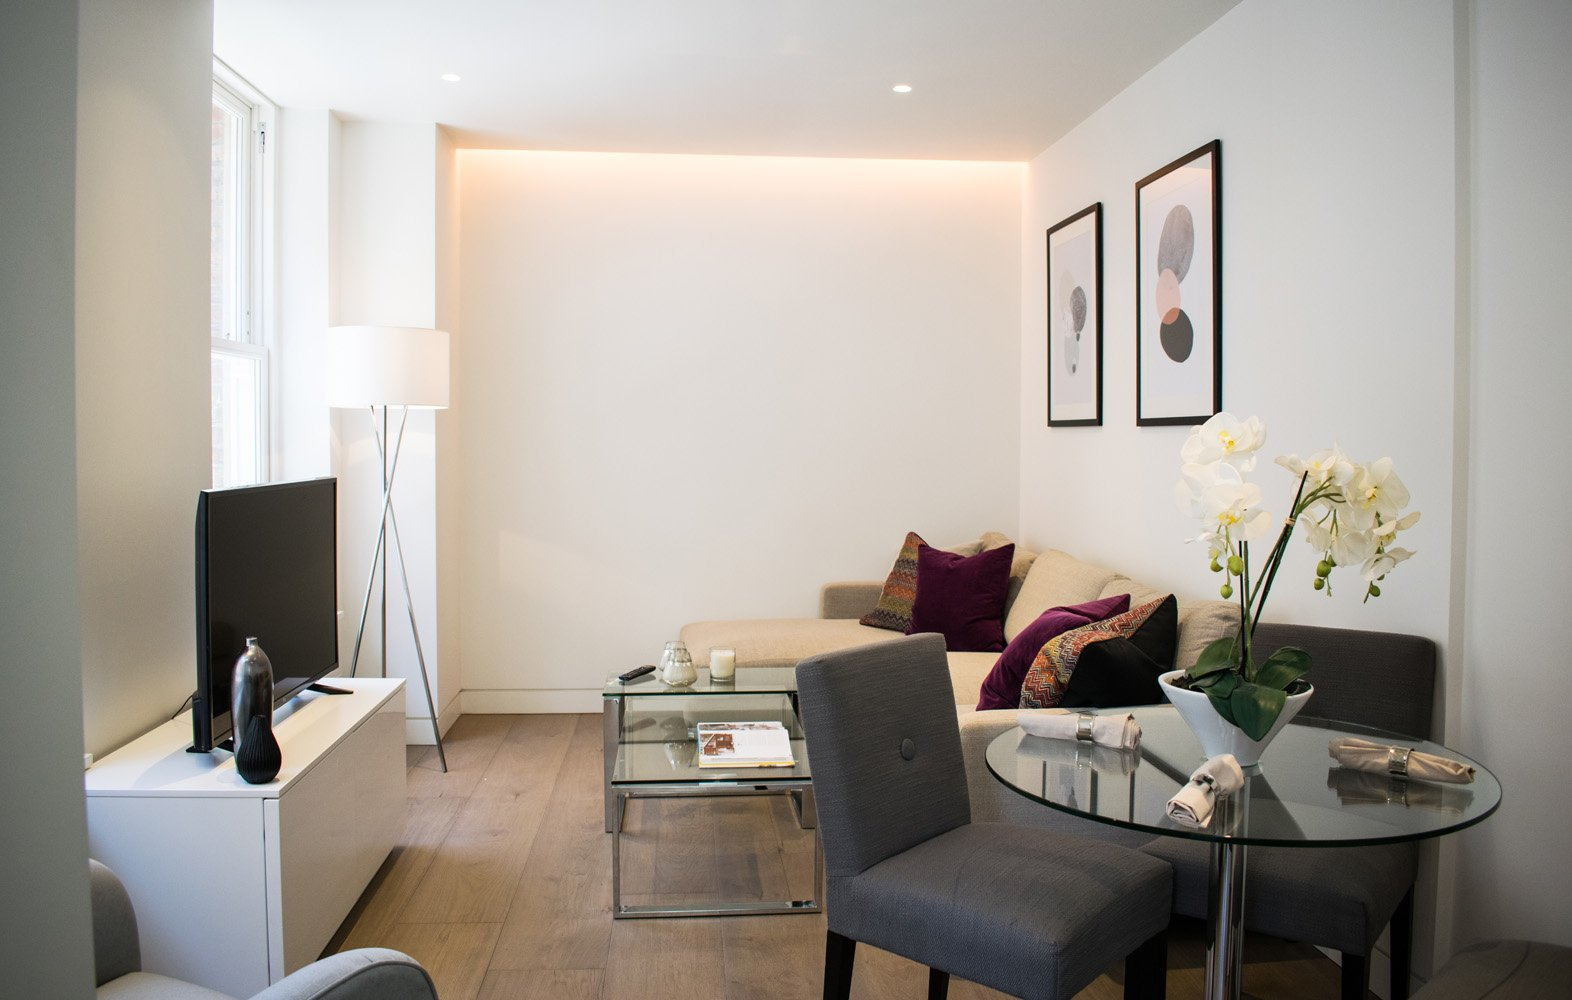 Marylebone-Luxury-Accommodation-Central-London-Serviced-Apartments-Near-Oxford-Street,-Bond-Street-&-Hyde-Park-Urban-Stay